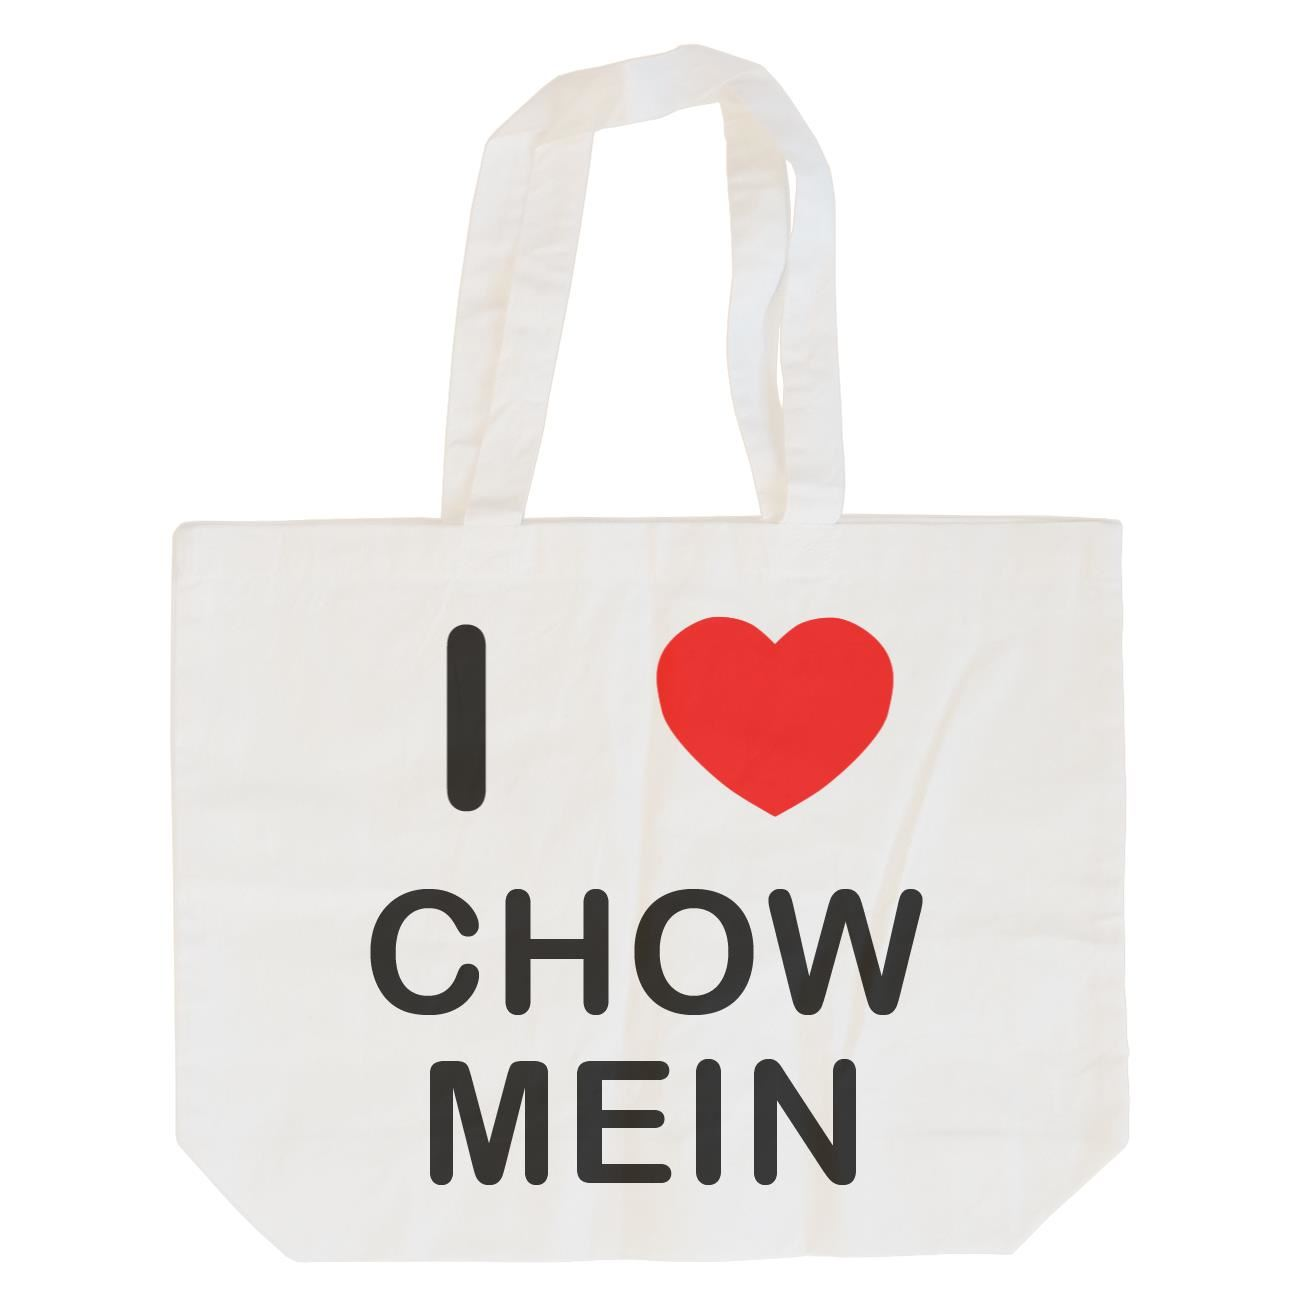 I Love Chow Mein - Cotton Bag | Size choice Tote, Shopper or Sling